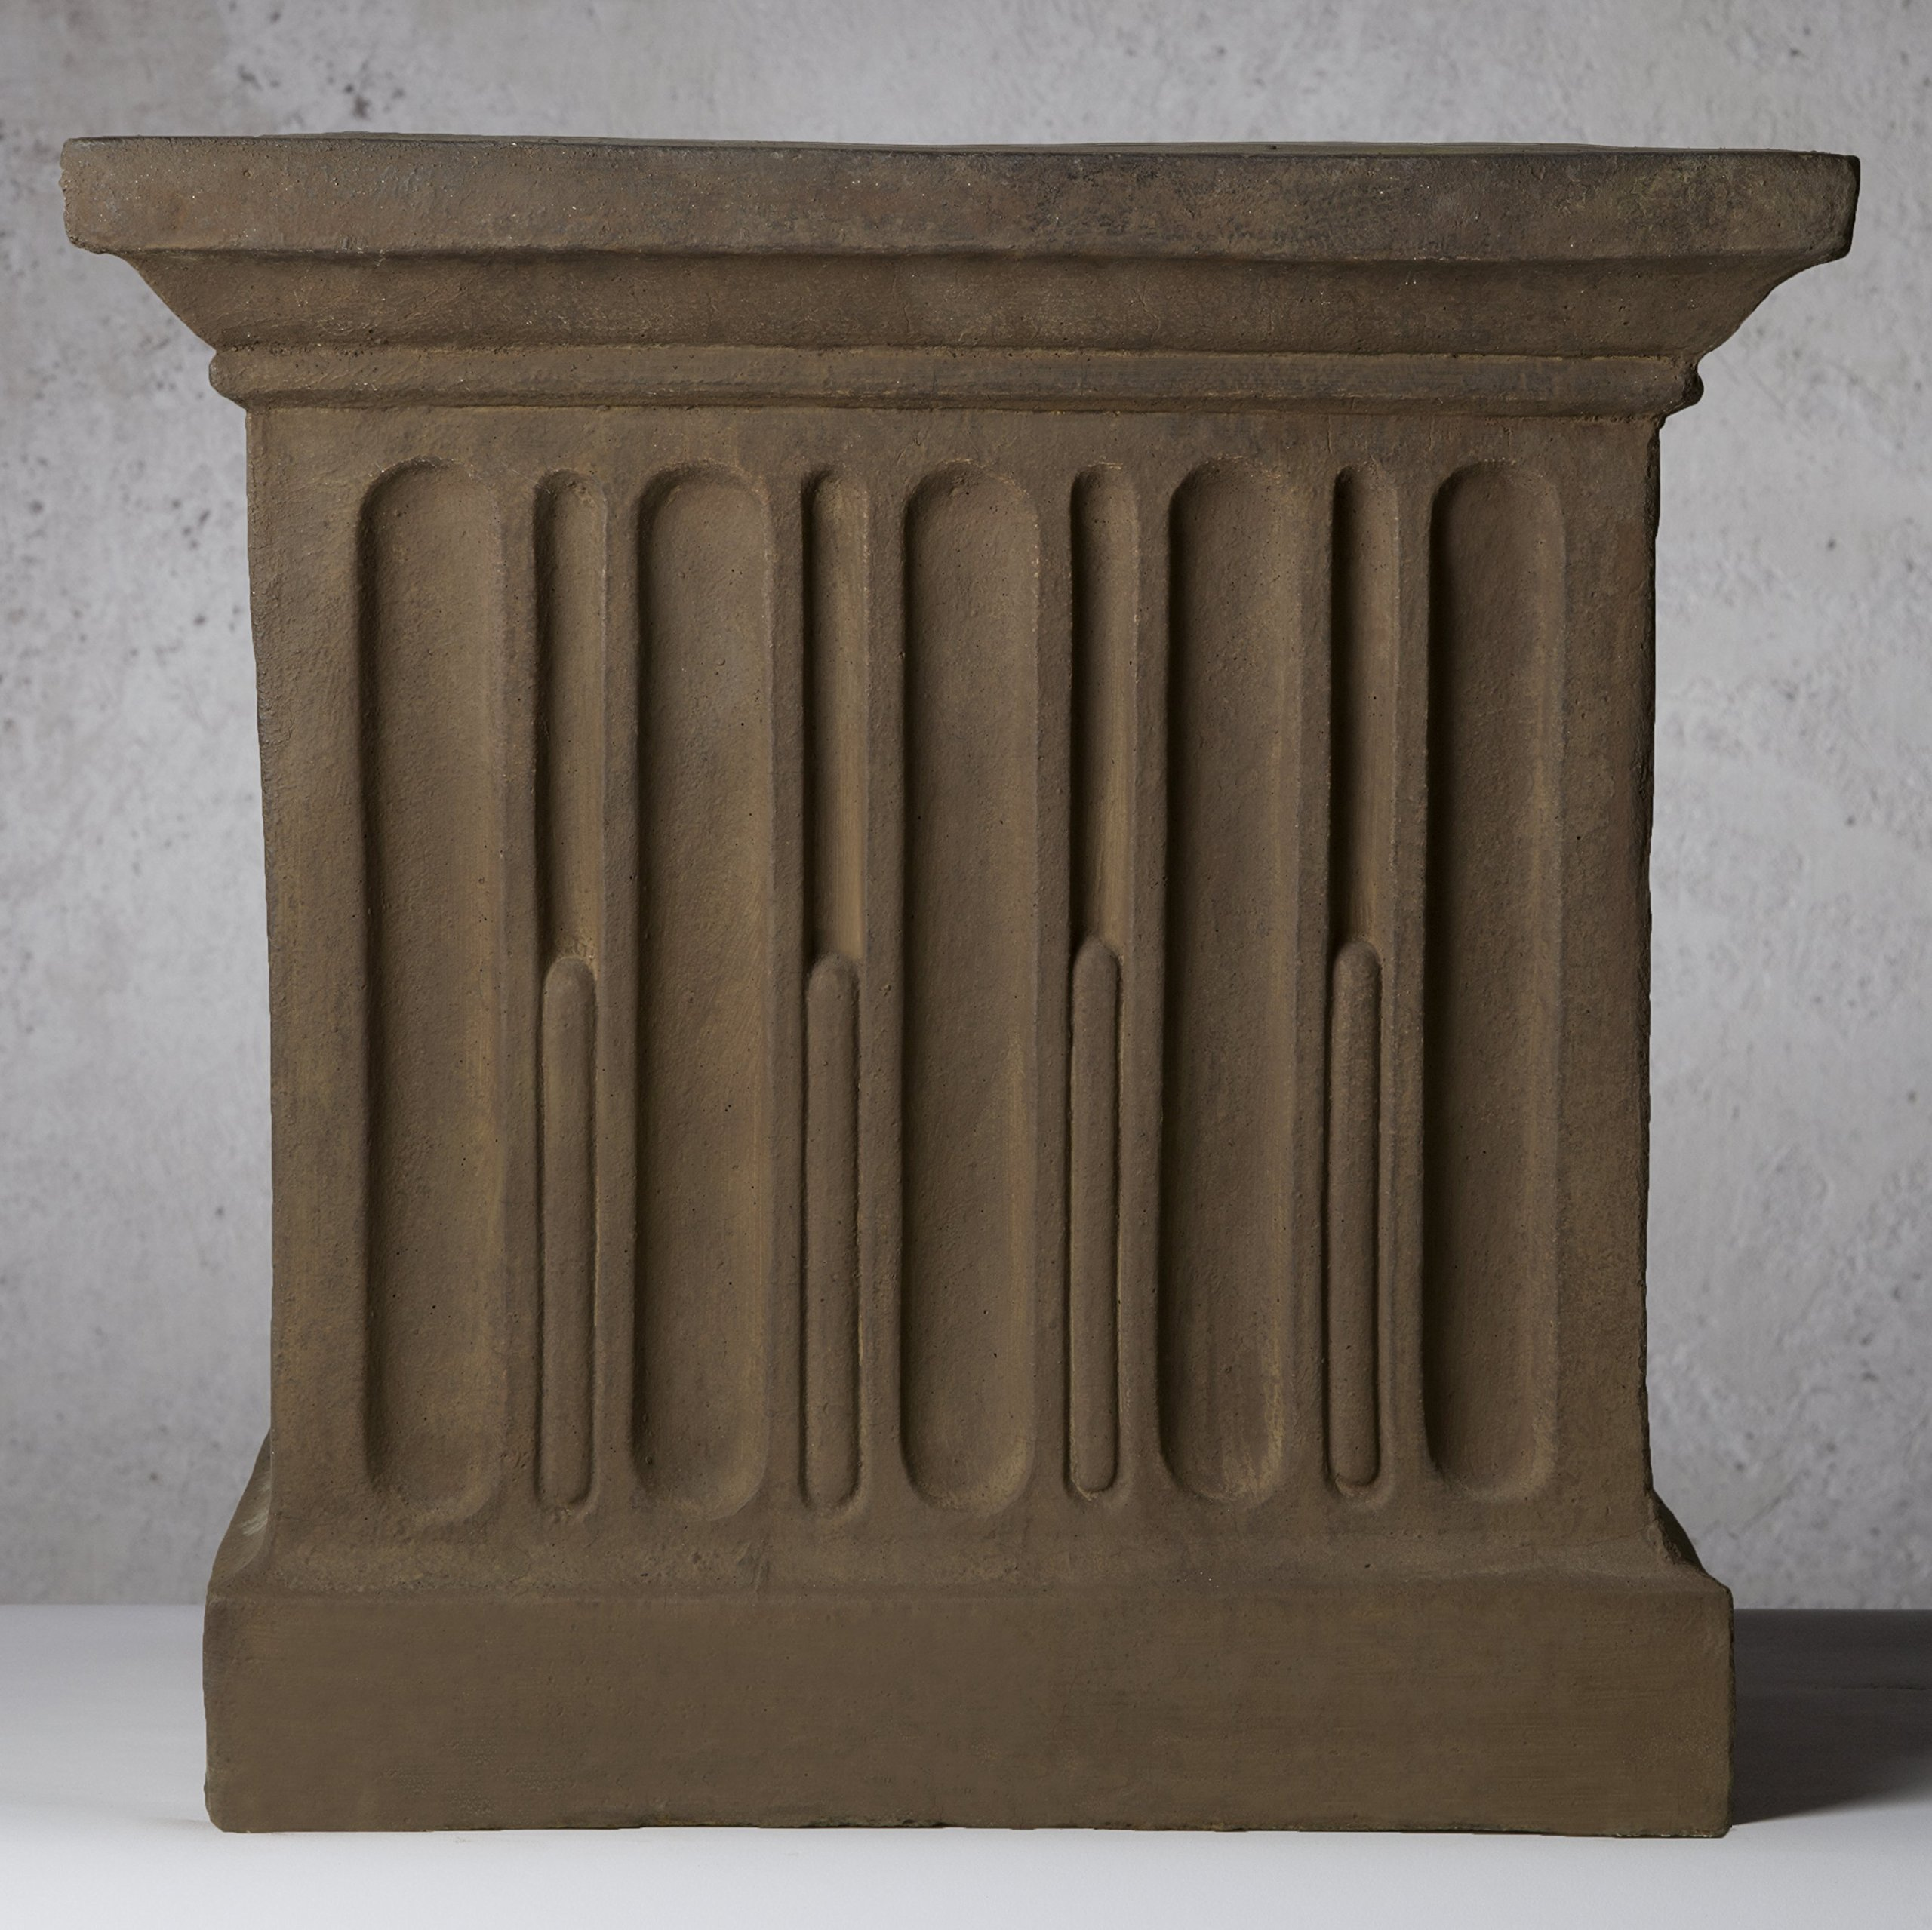 Campania International 2931-PV Pedestal Planter, Large, Pietra Vecchia Finish